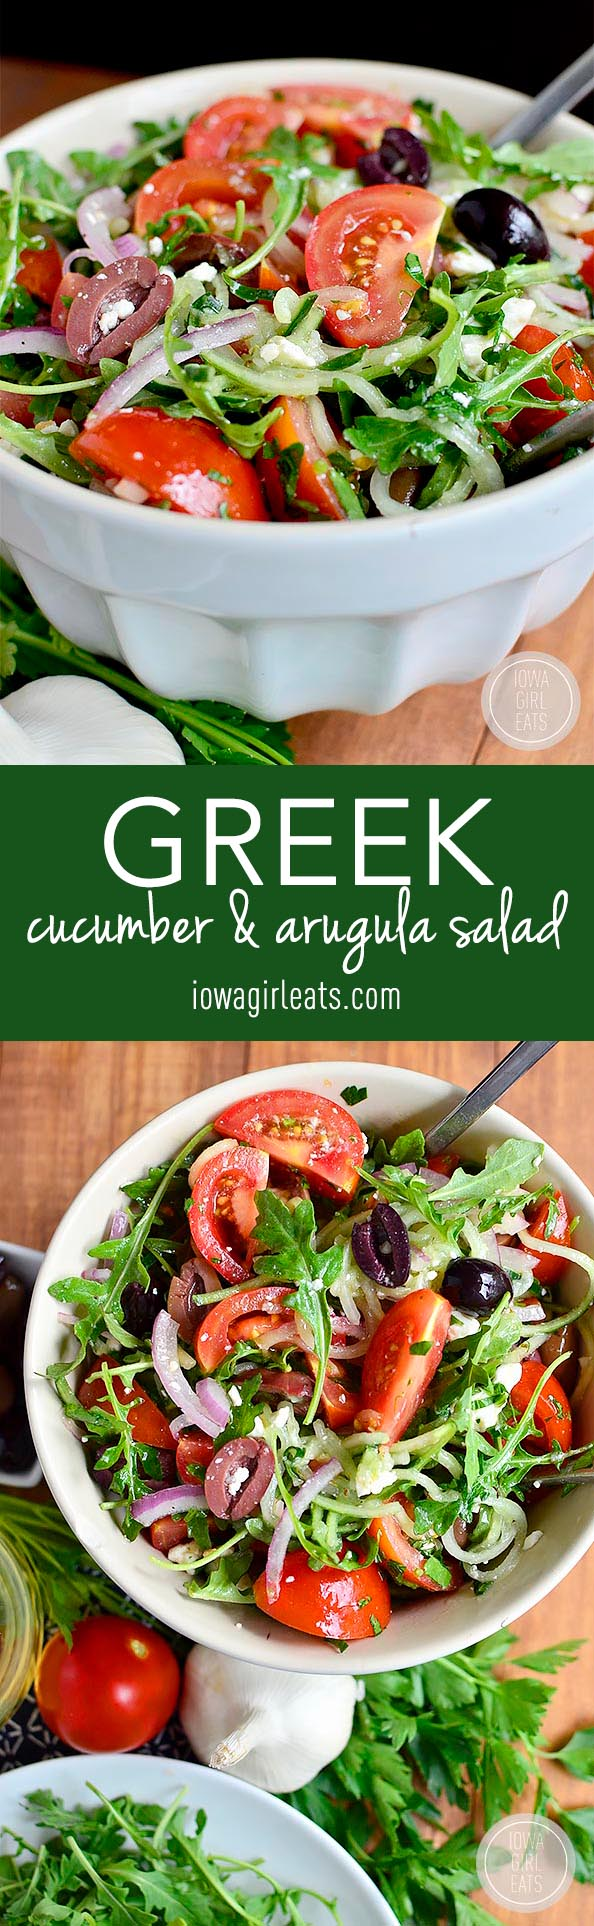 Greek Cucumber and Arugula Salad is fresh and light. Perfect as a light side with dinner or taking to a party or pot luck! #glutenfree | iowagirleats.com